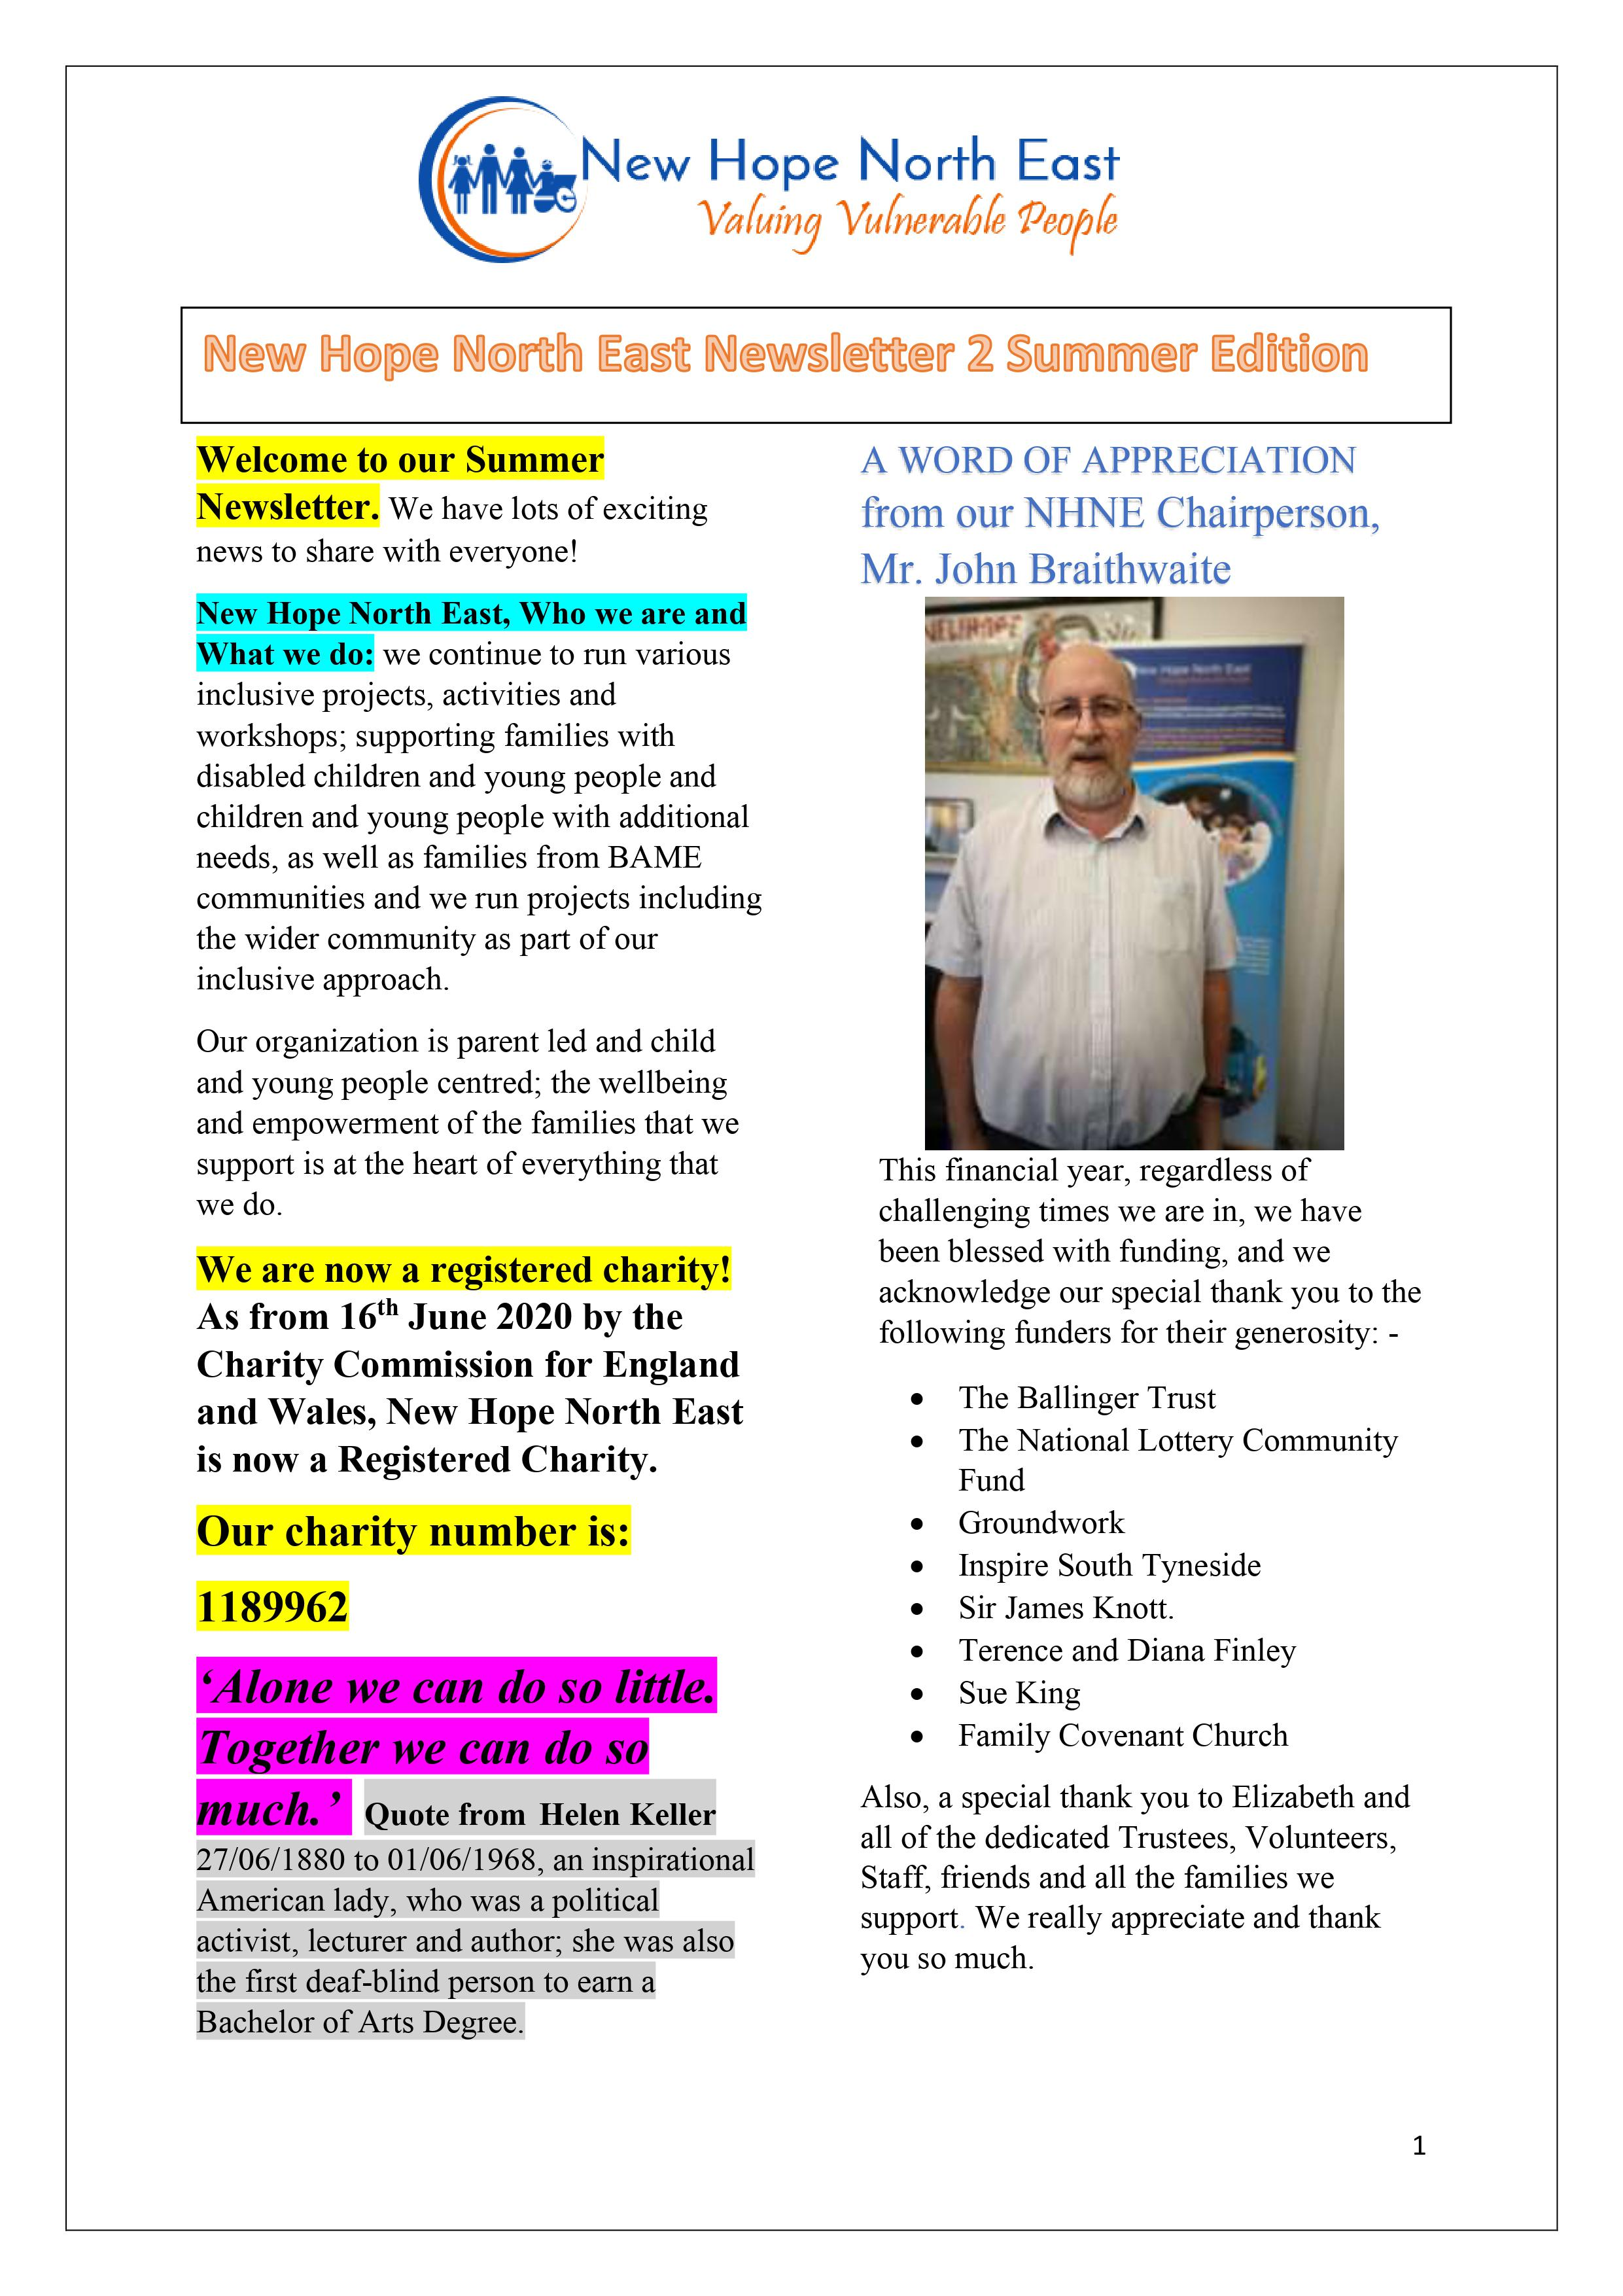 New Hope North East Newsletter 2 Summer Edition 2020